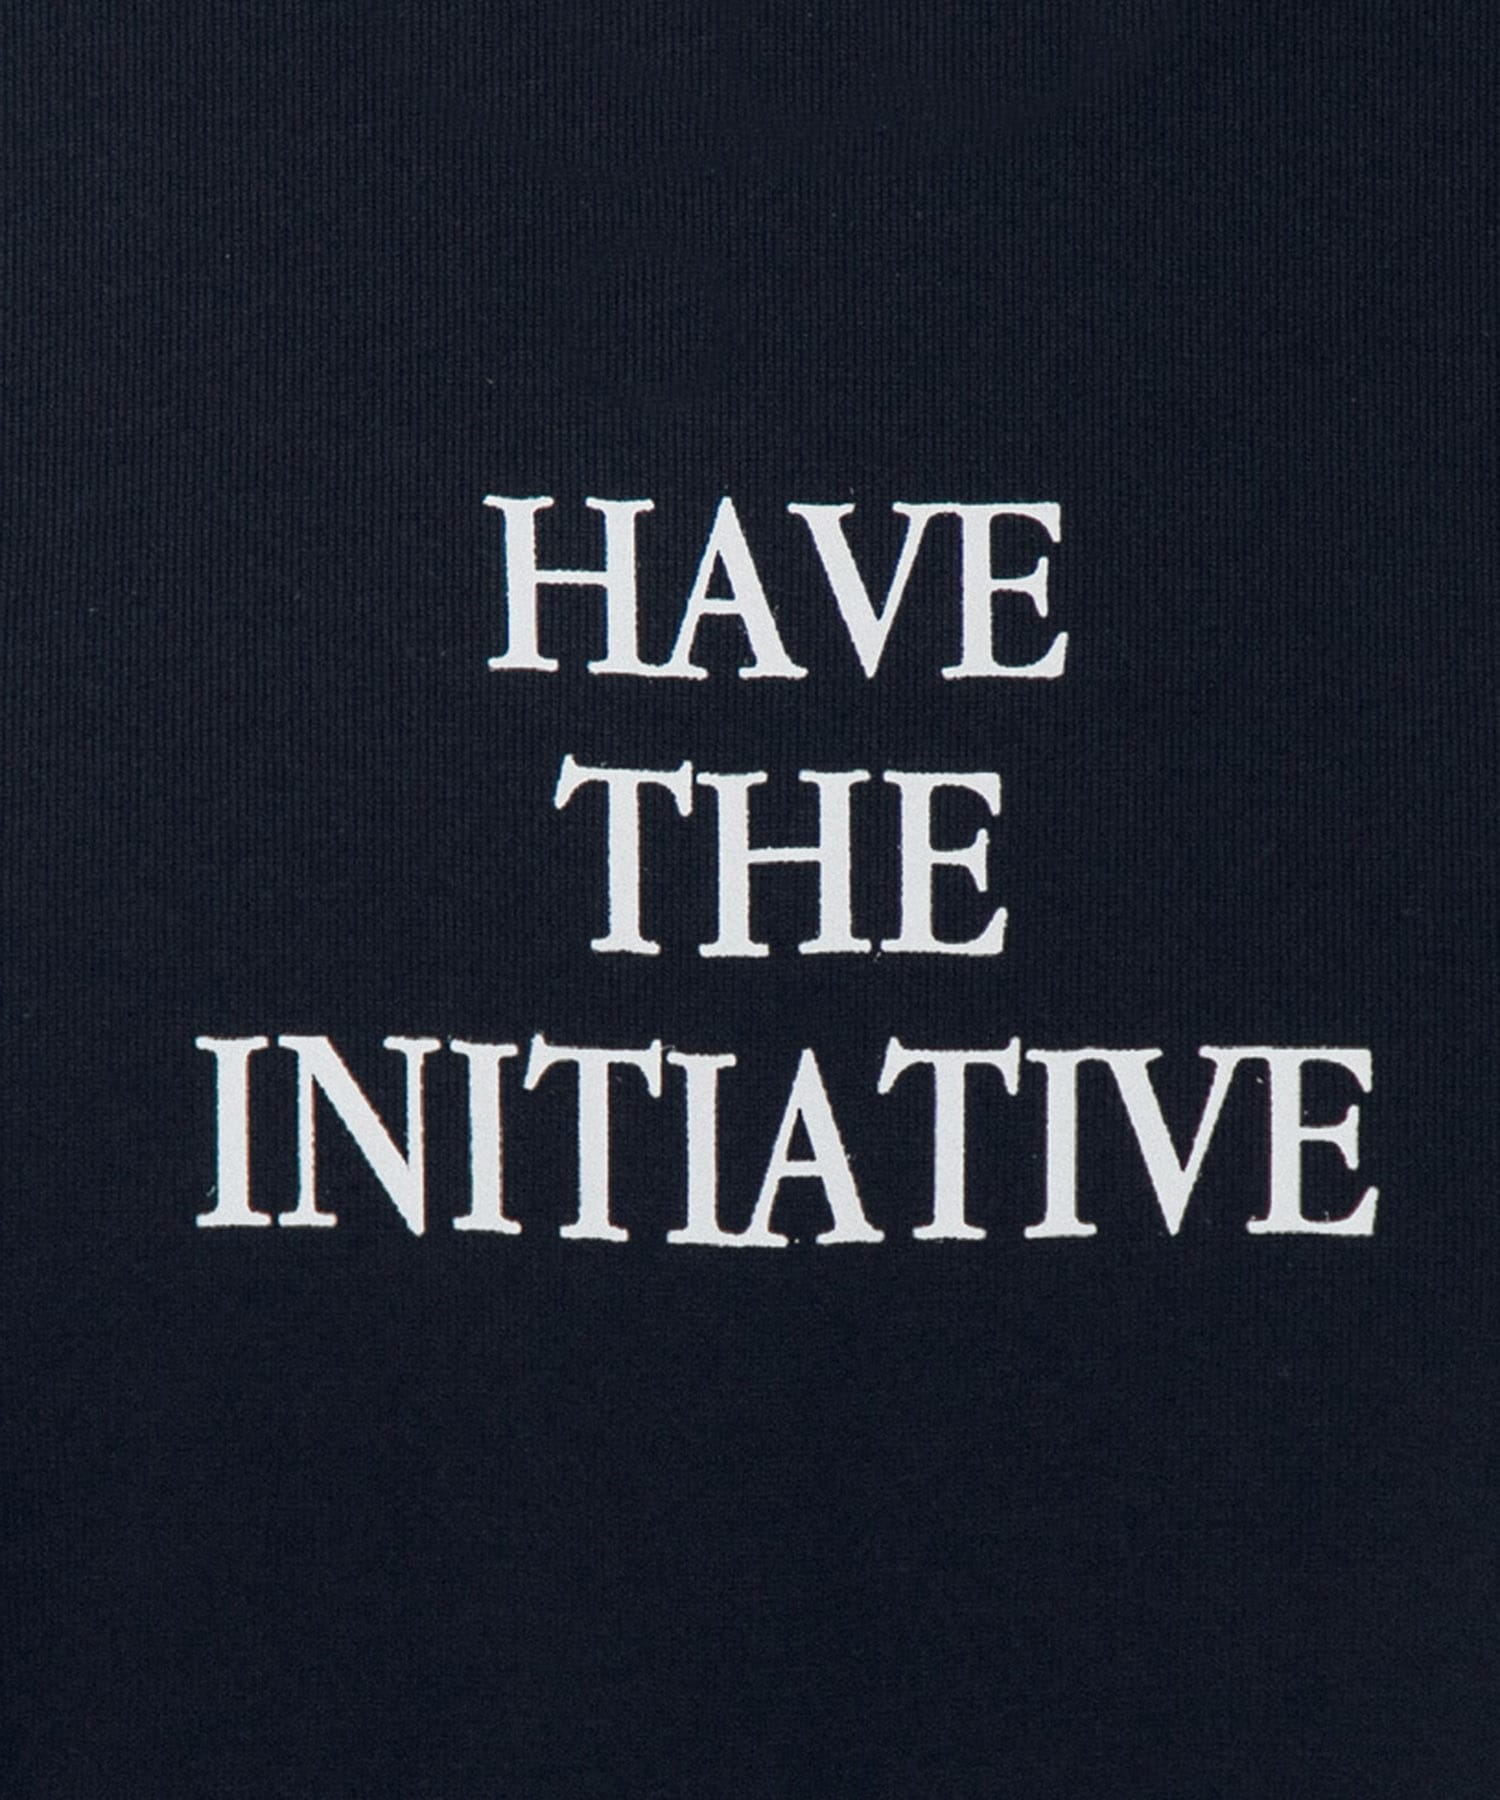 HAVE THE INITIATIVE T